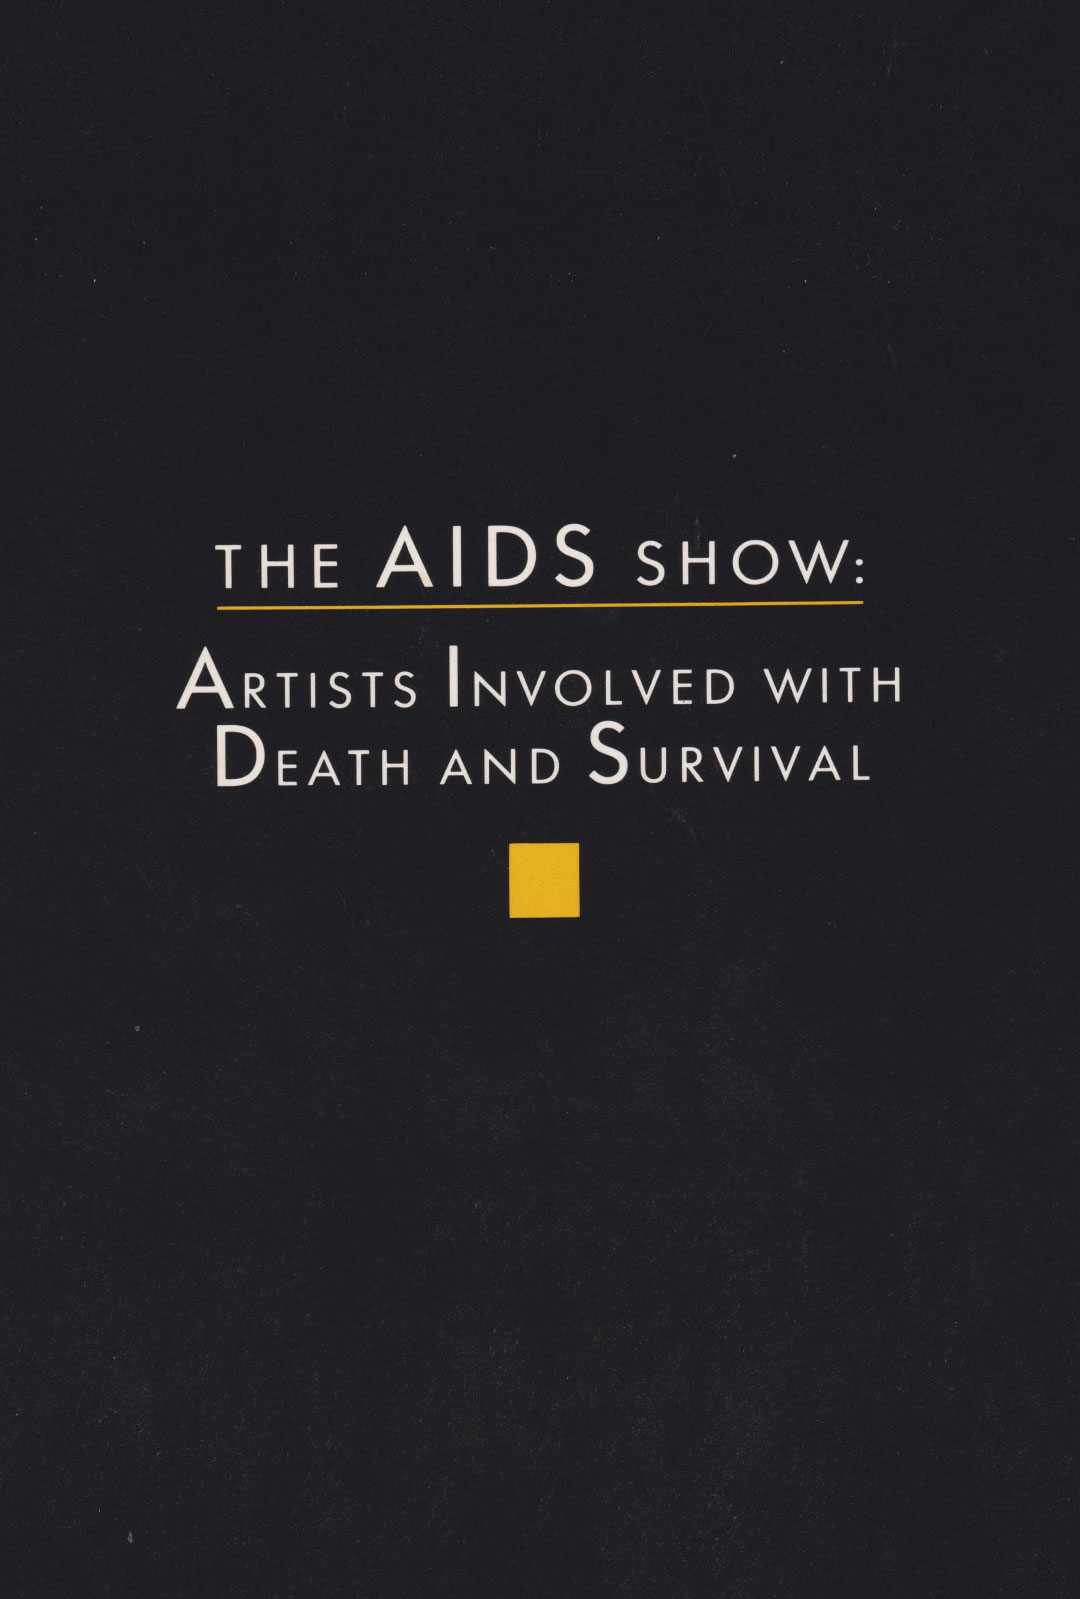 TheAIDSShow_Poster_1600.jpg